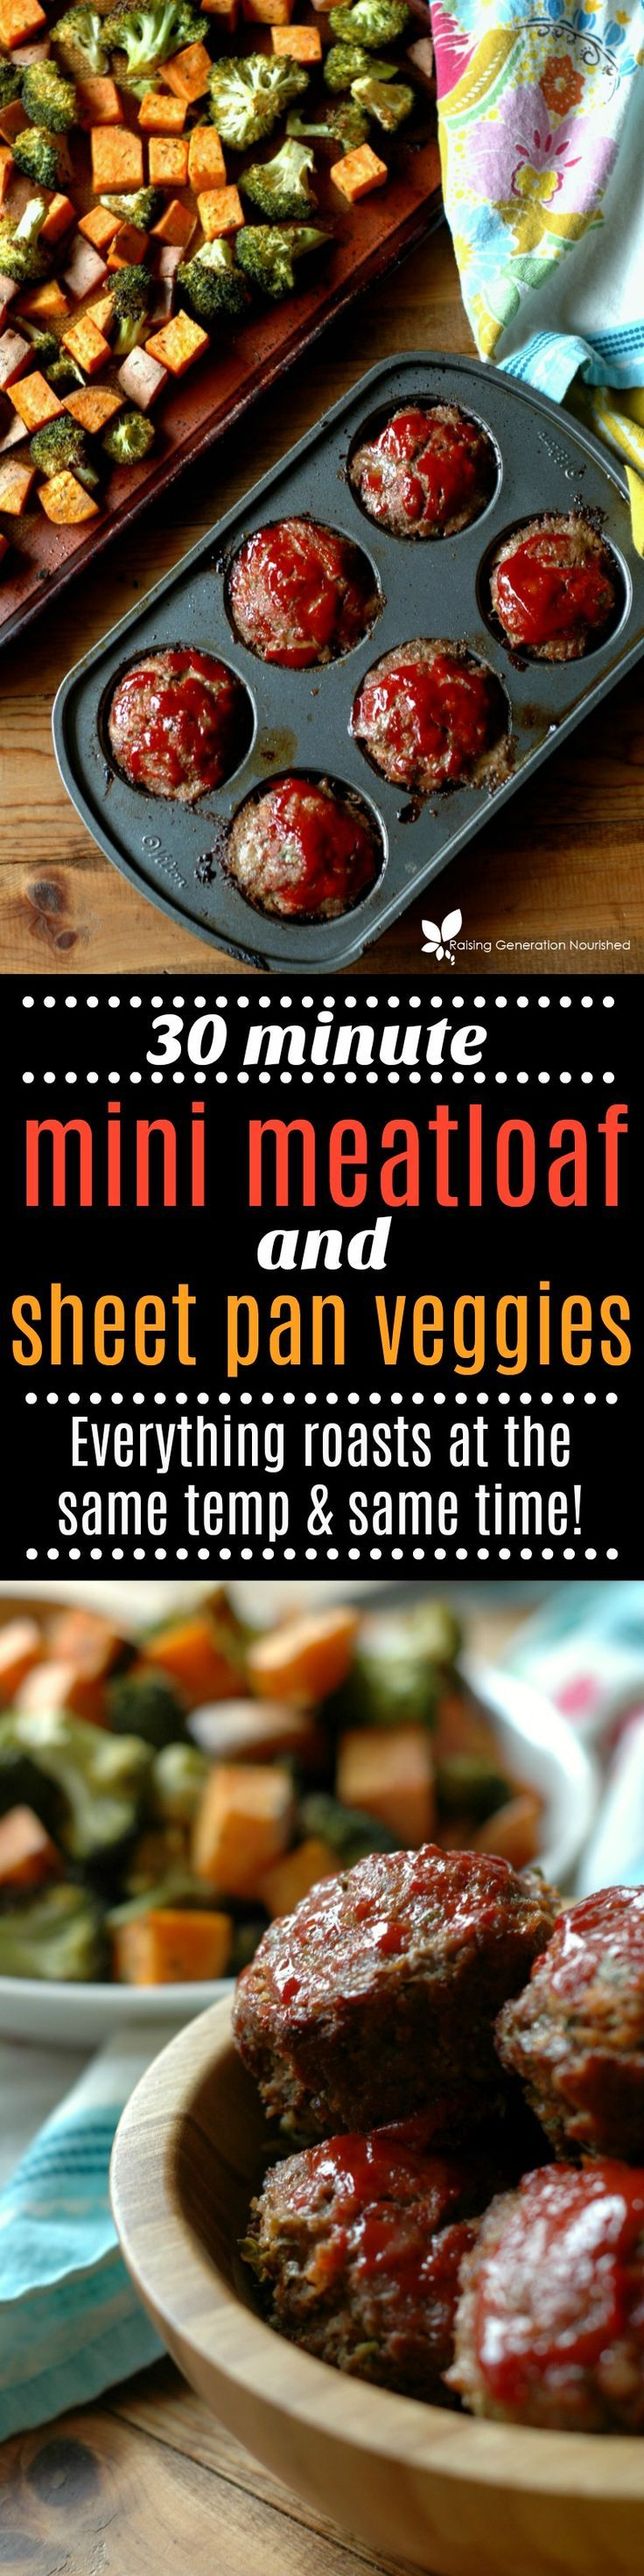 A nourishing, nutrient dense meatloaf dinner in weeknight fast prep time! Use winter squash for GAPS option.